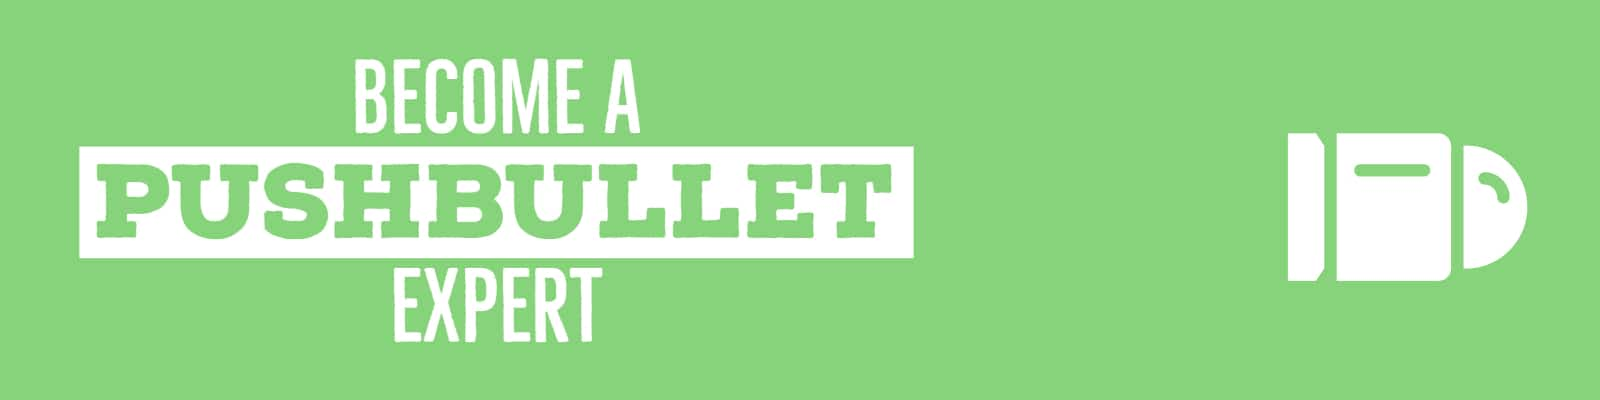 Become a pushbullet expert